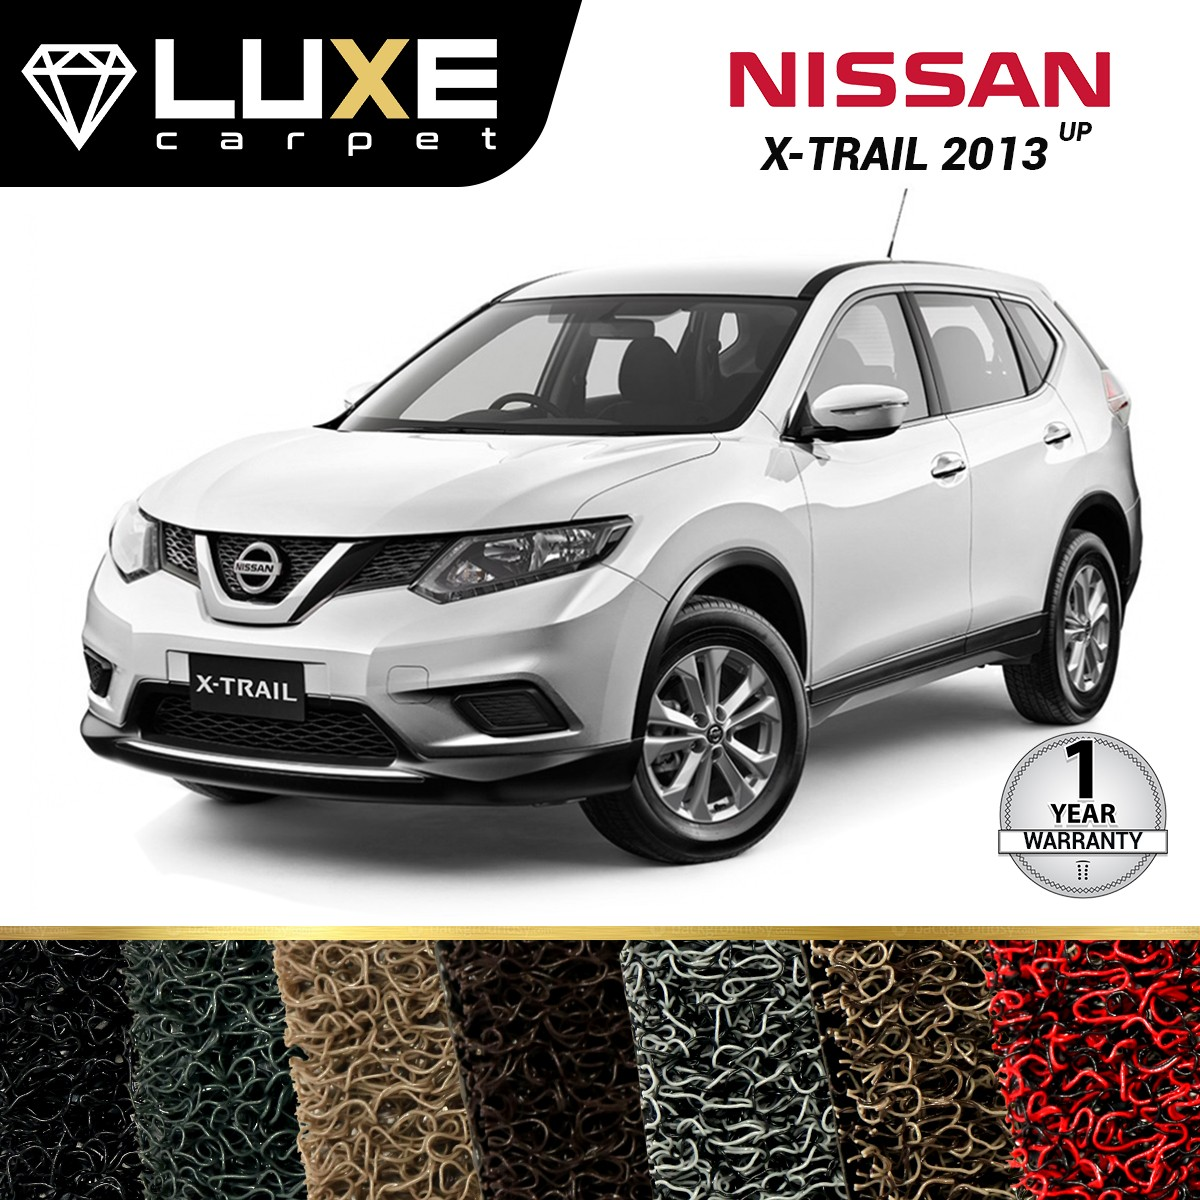 KARPET LUXE + BAGASI NISSAN ALL NEW XTRAIL 2014 UP - GOLD SERIES